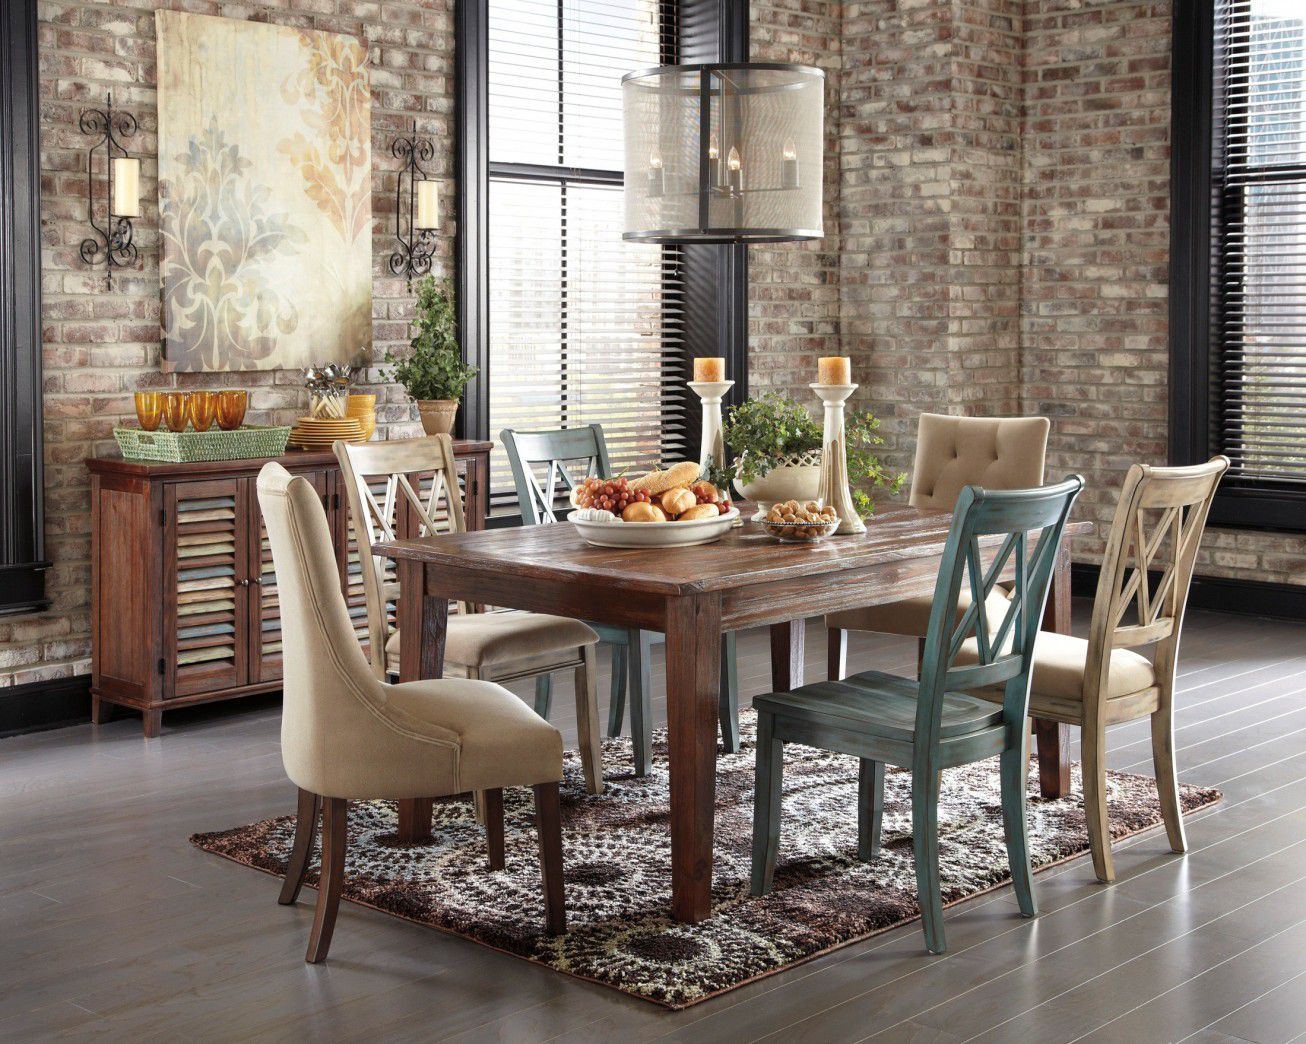 Astonishing Design Of The Dining Room Areas With Grey Floor Added With  Brown Wooden Table And